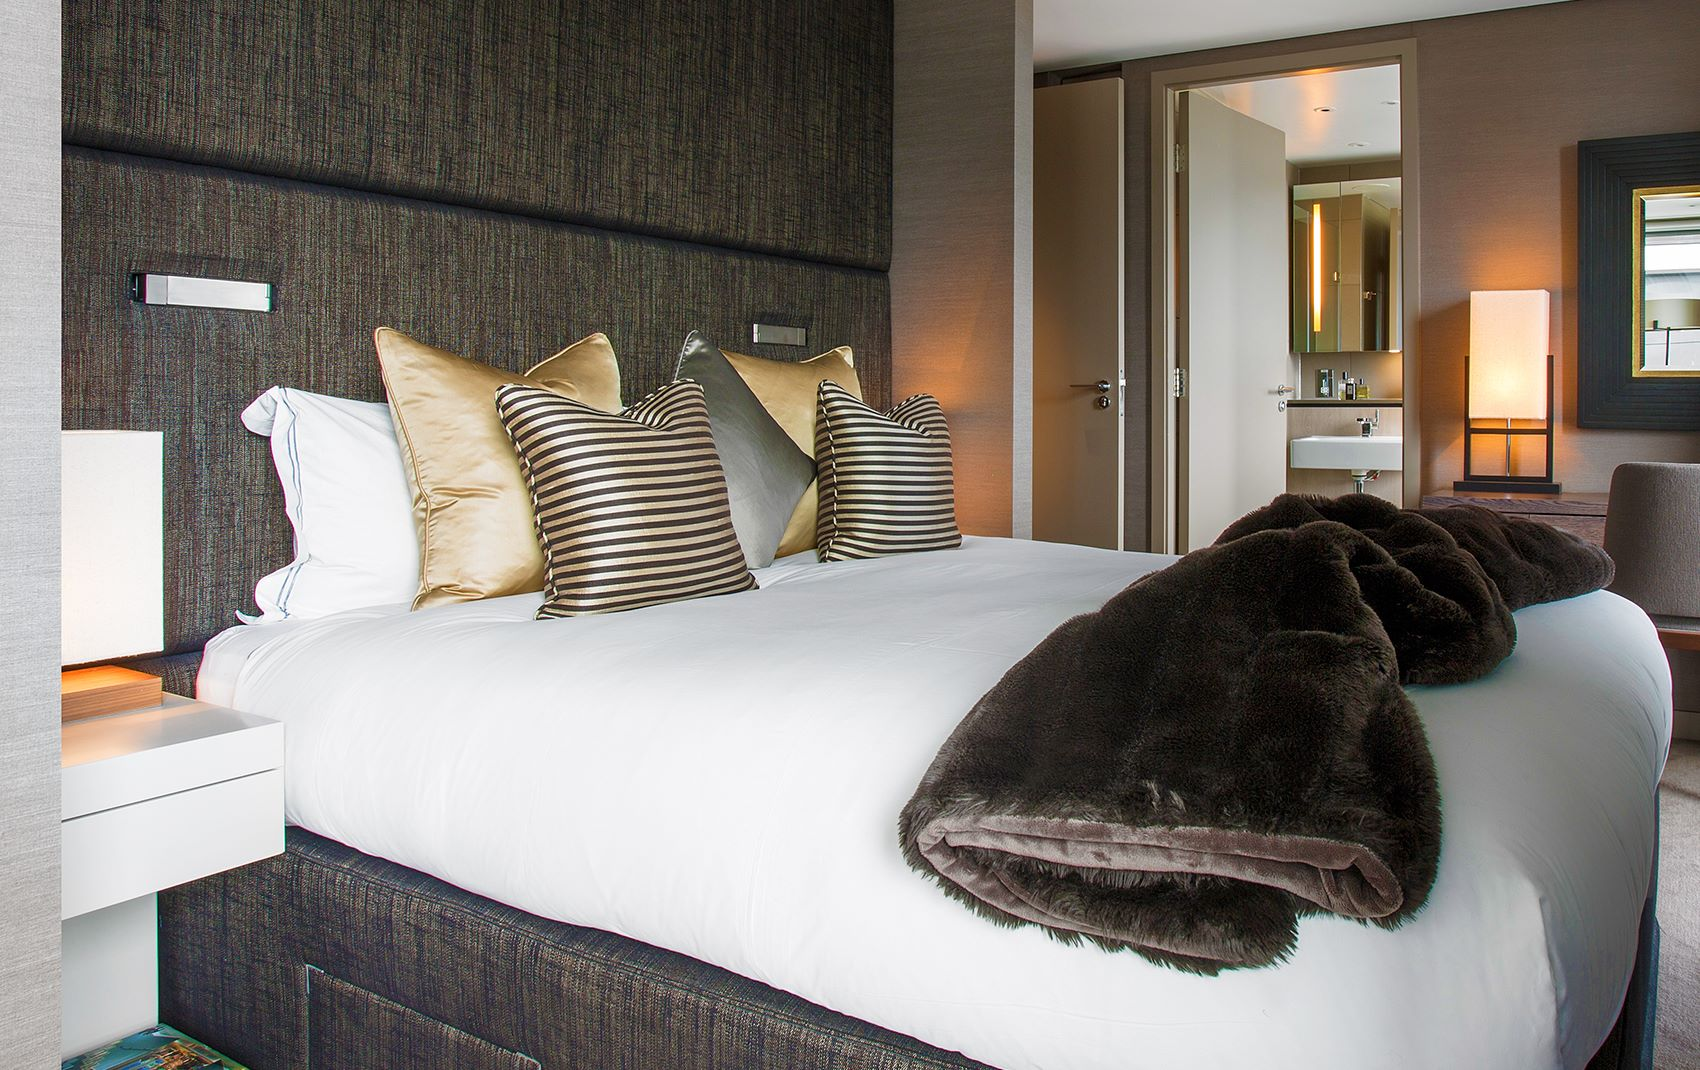 west london penthouse - bed with gold pillows and plush blanket